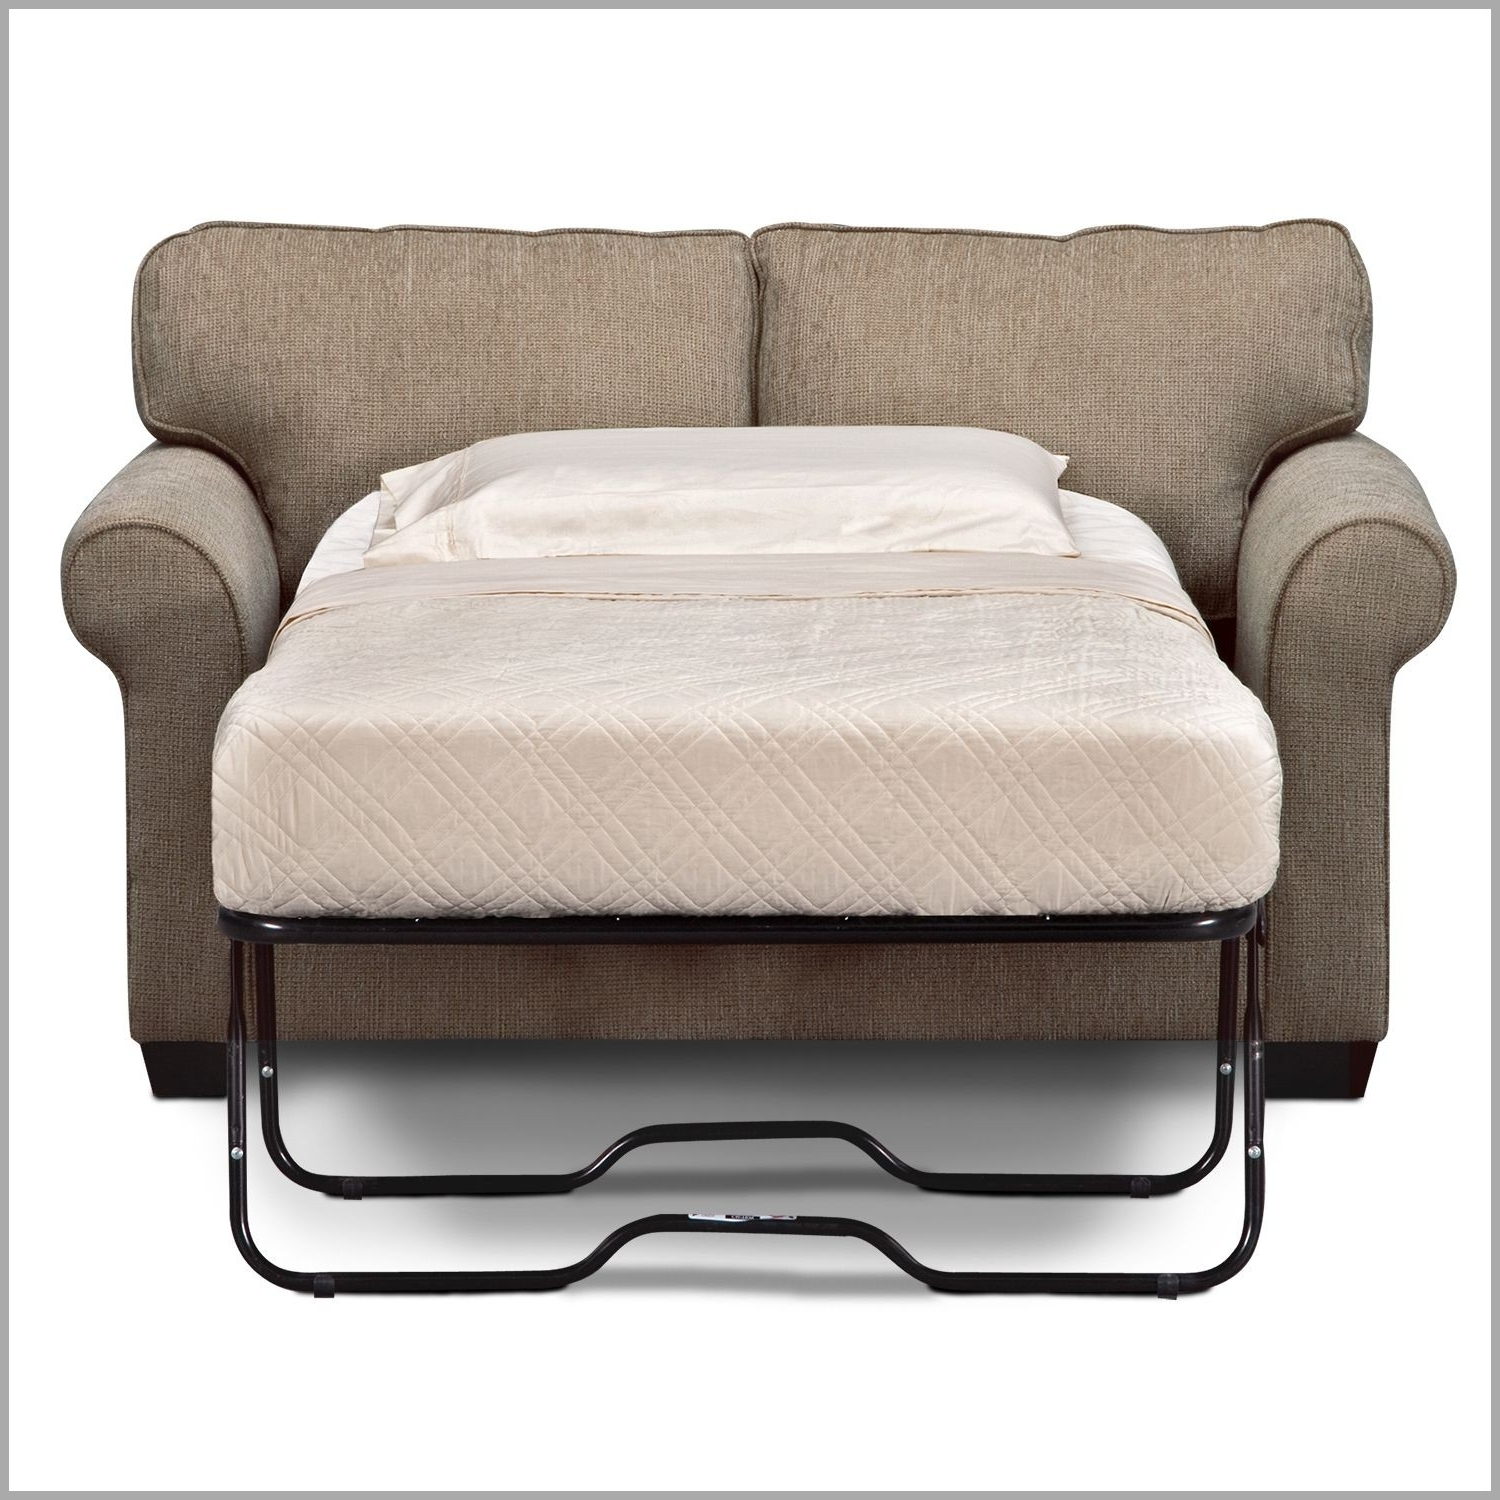 Pull Out Sofa Chairs Throughout Preferred Twin Size Sleeper Sofa Chairs New Surprising Decorative (View 3 of 15)